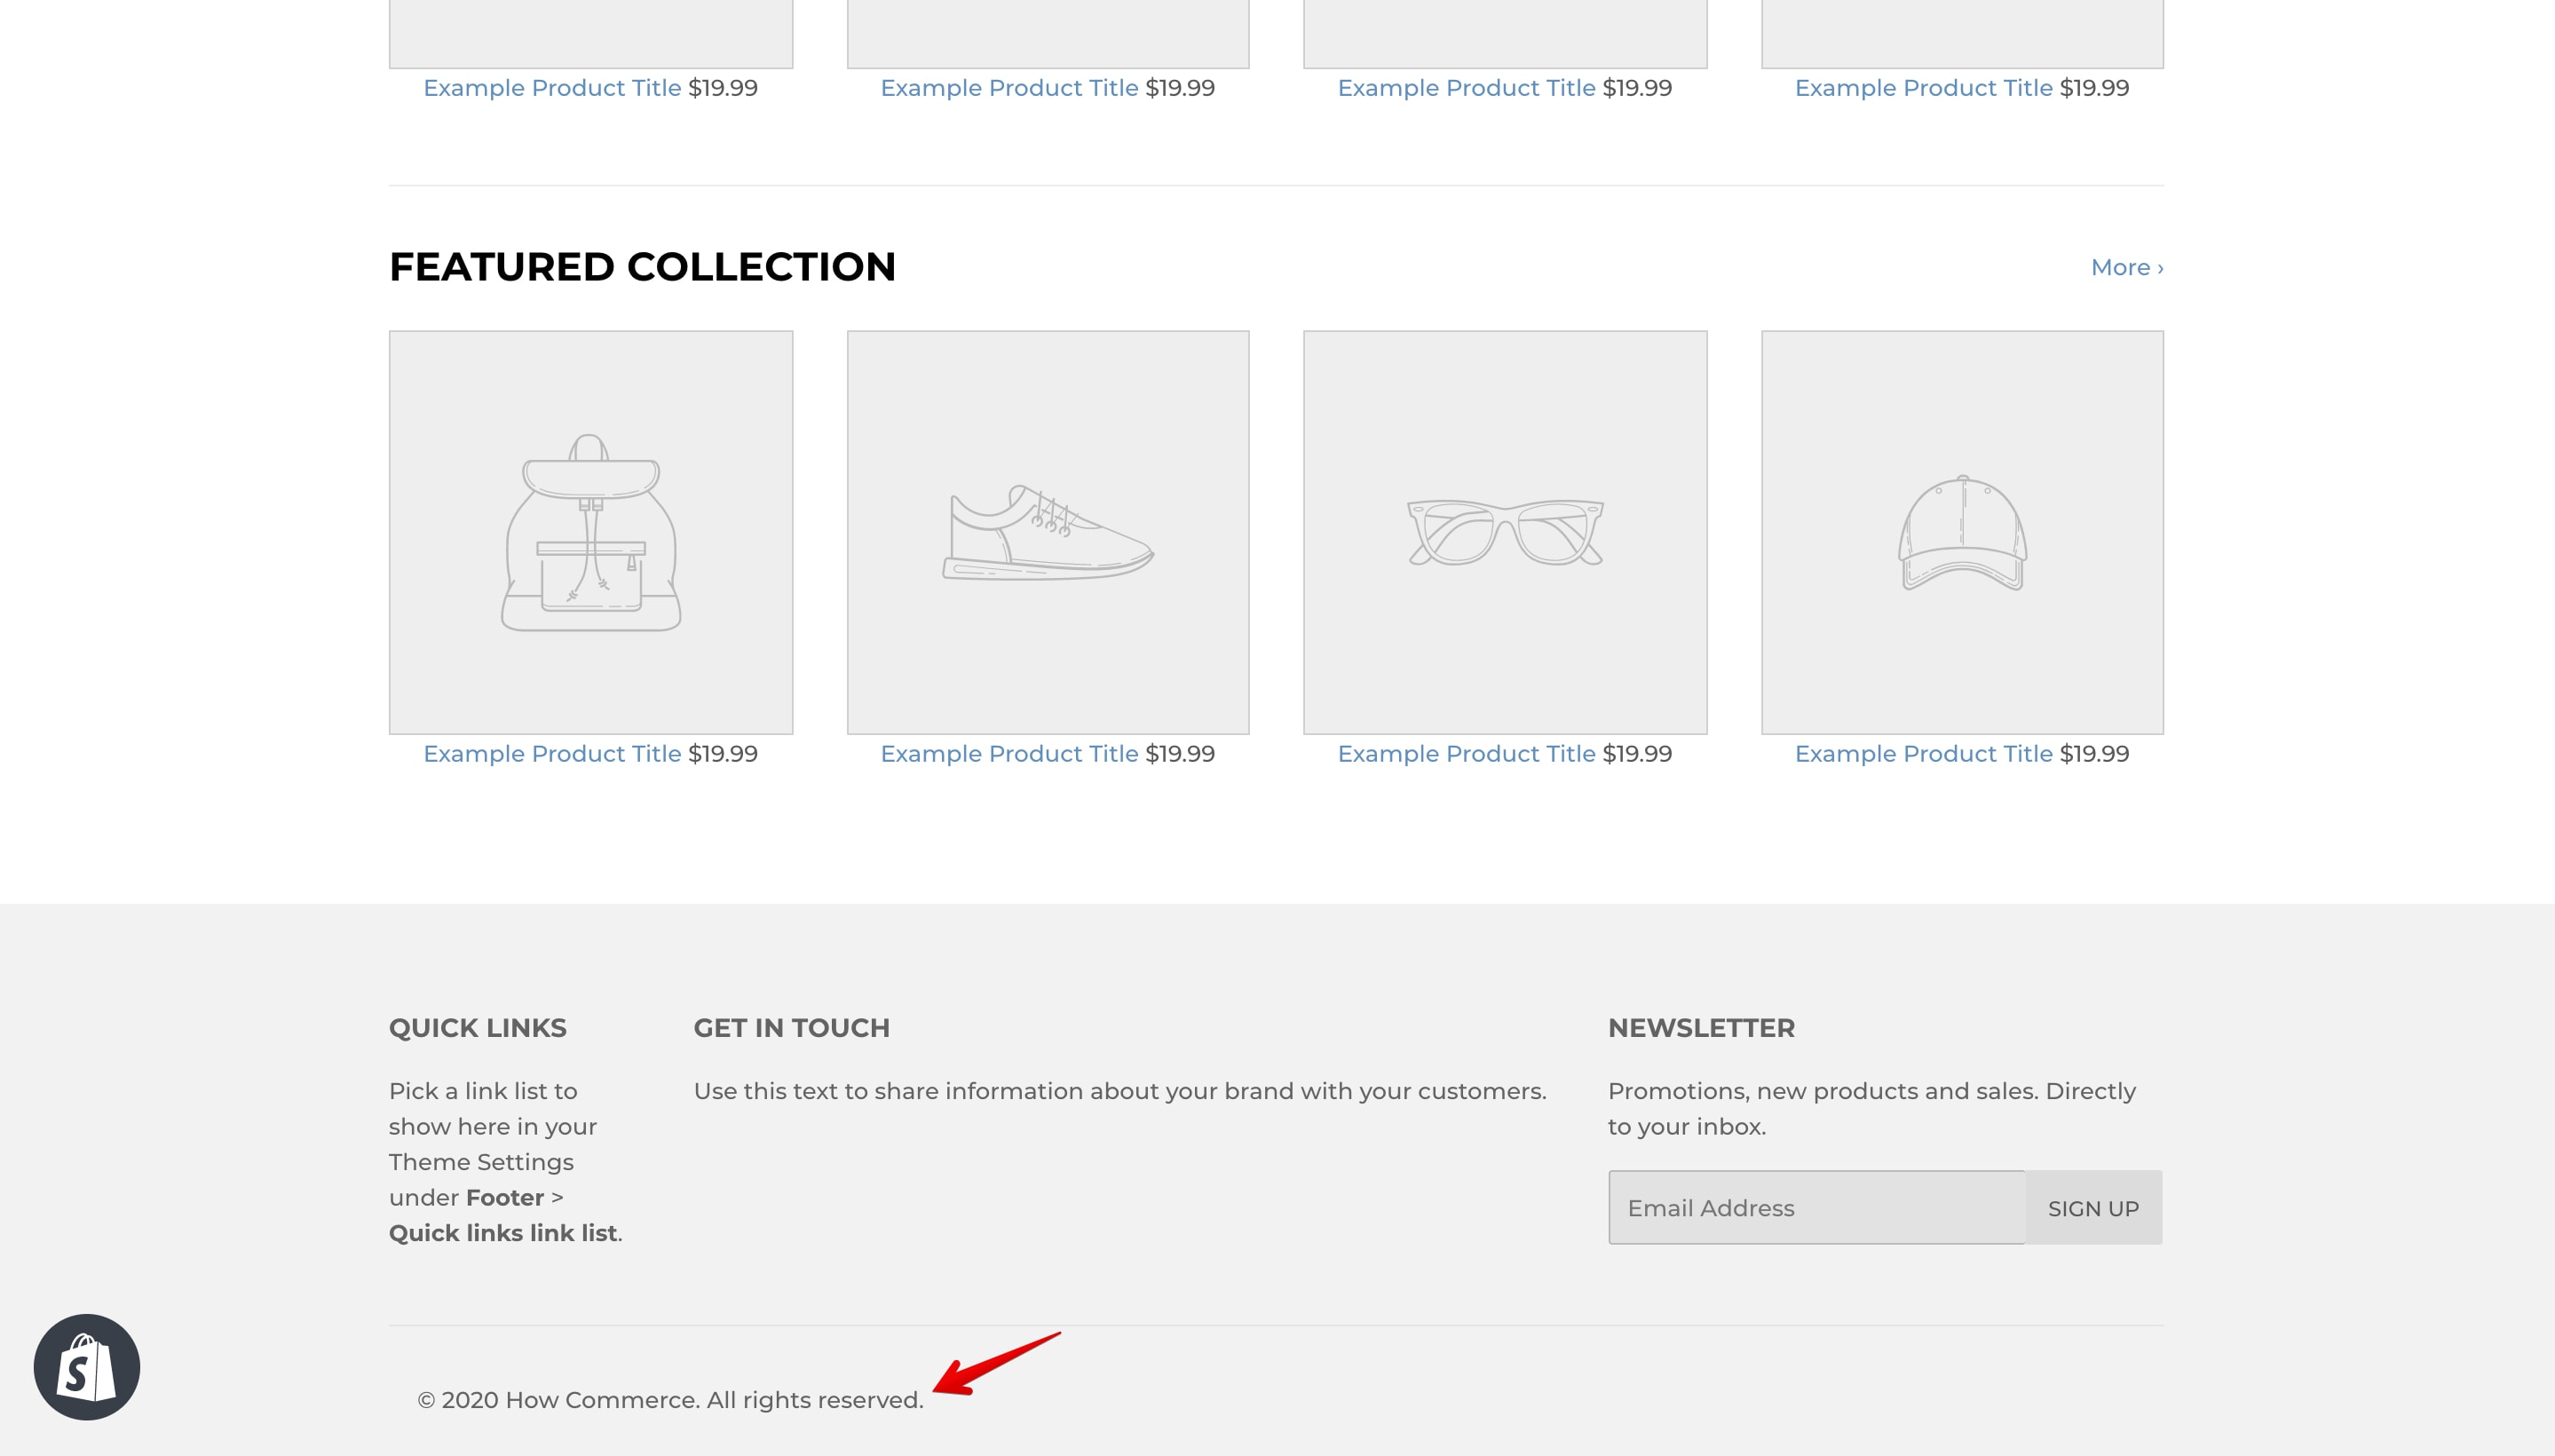 """Supply theme """"Powered by Shopify"""" copyright replaced."""